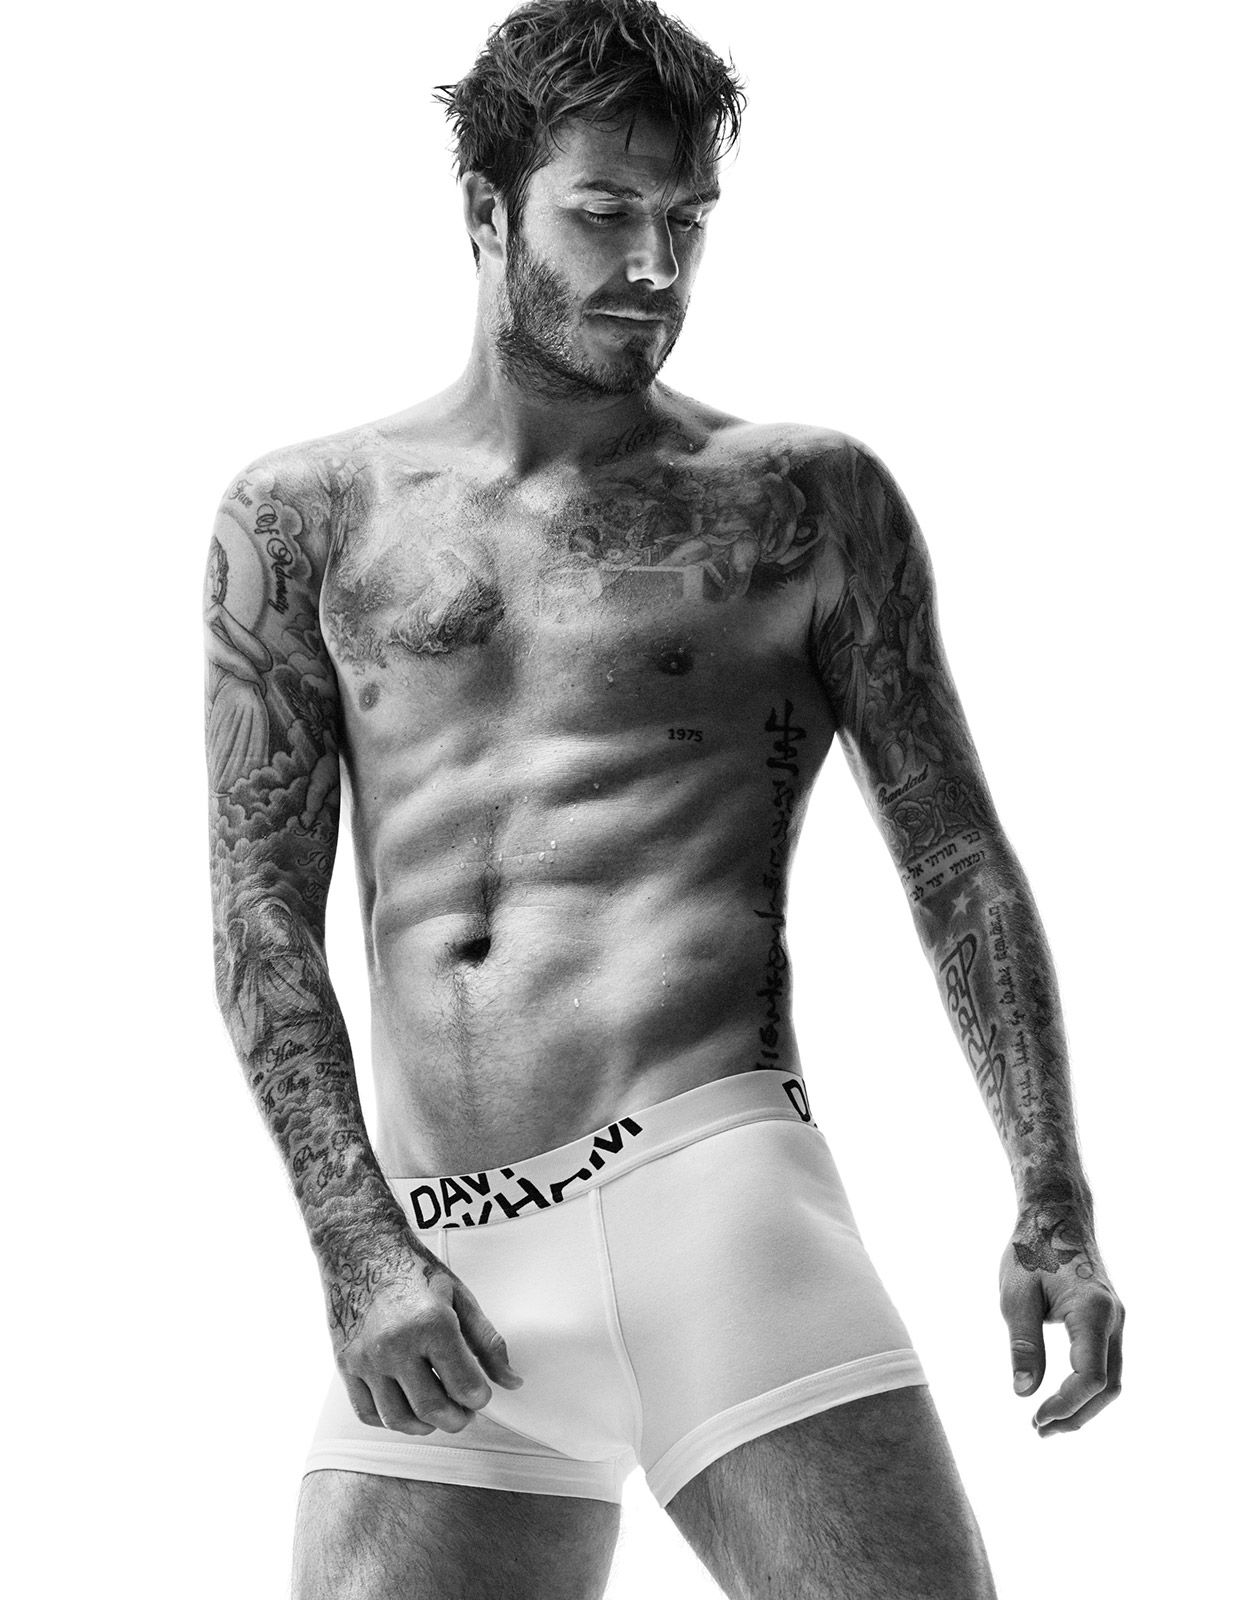 David beckham shows off ripped abs sexy tattoos in new underwear campaign pictures